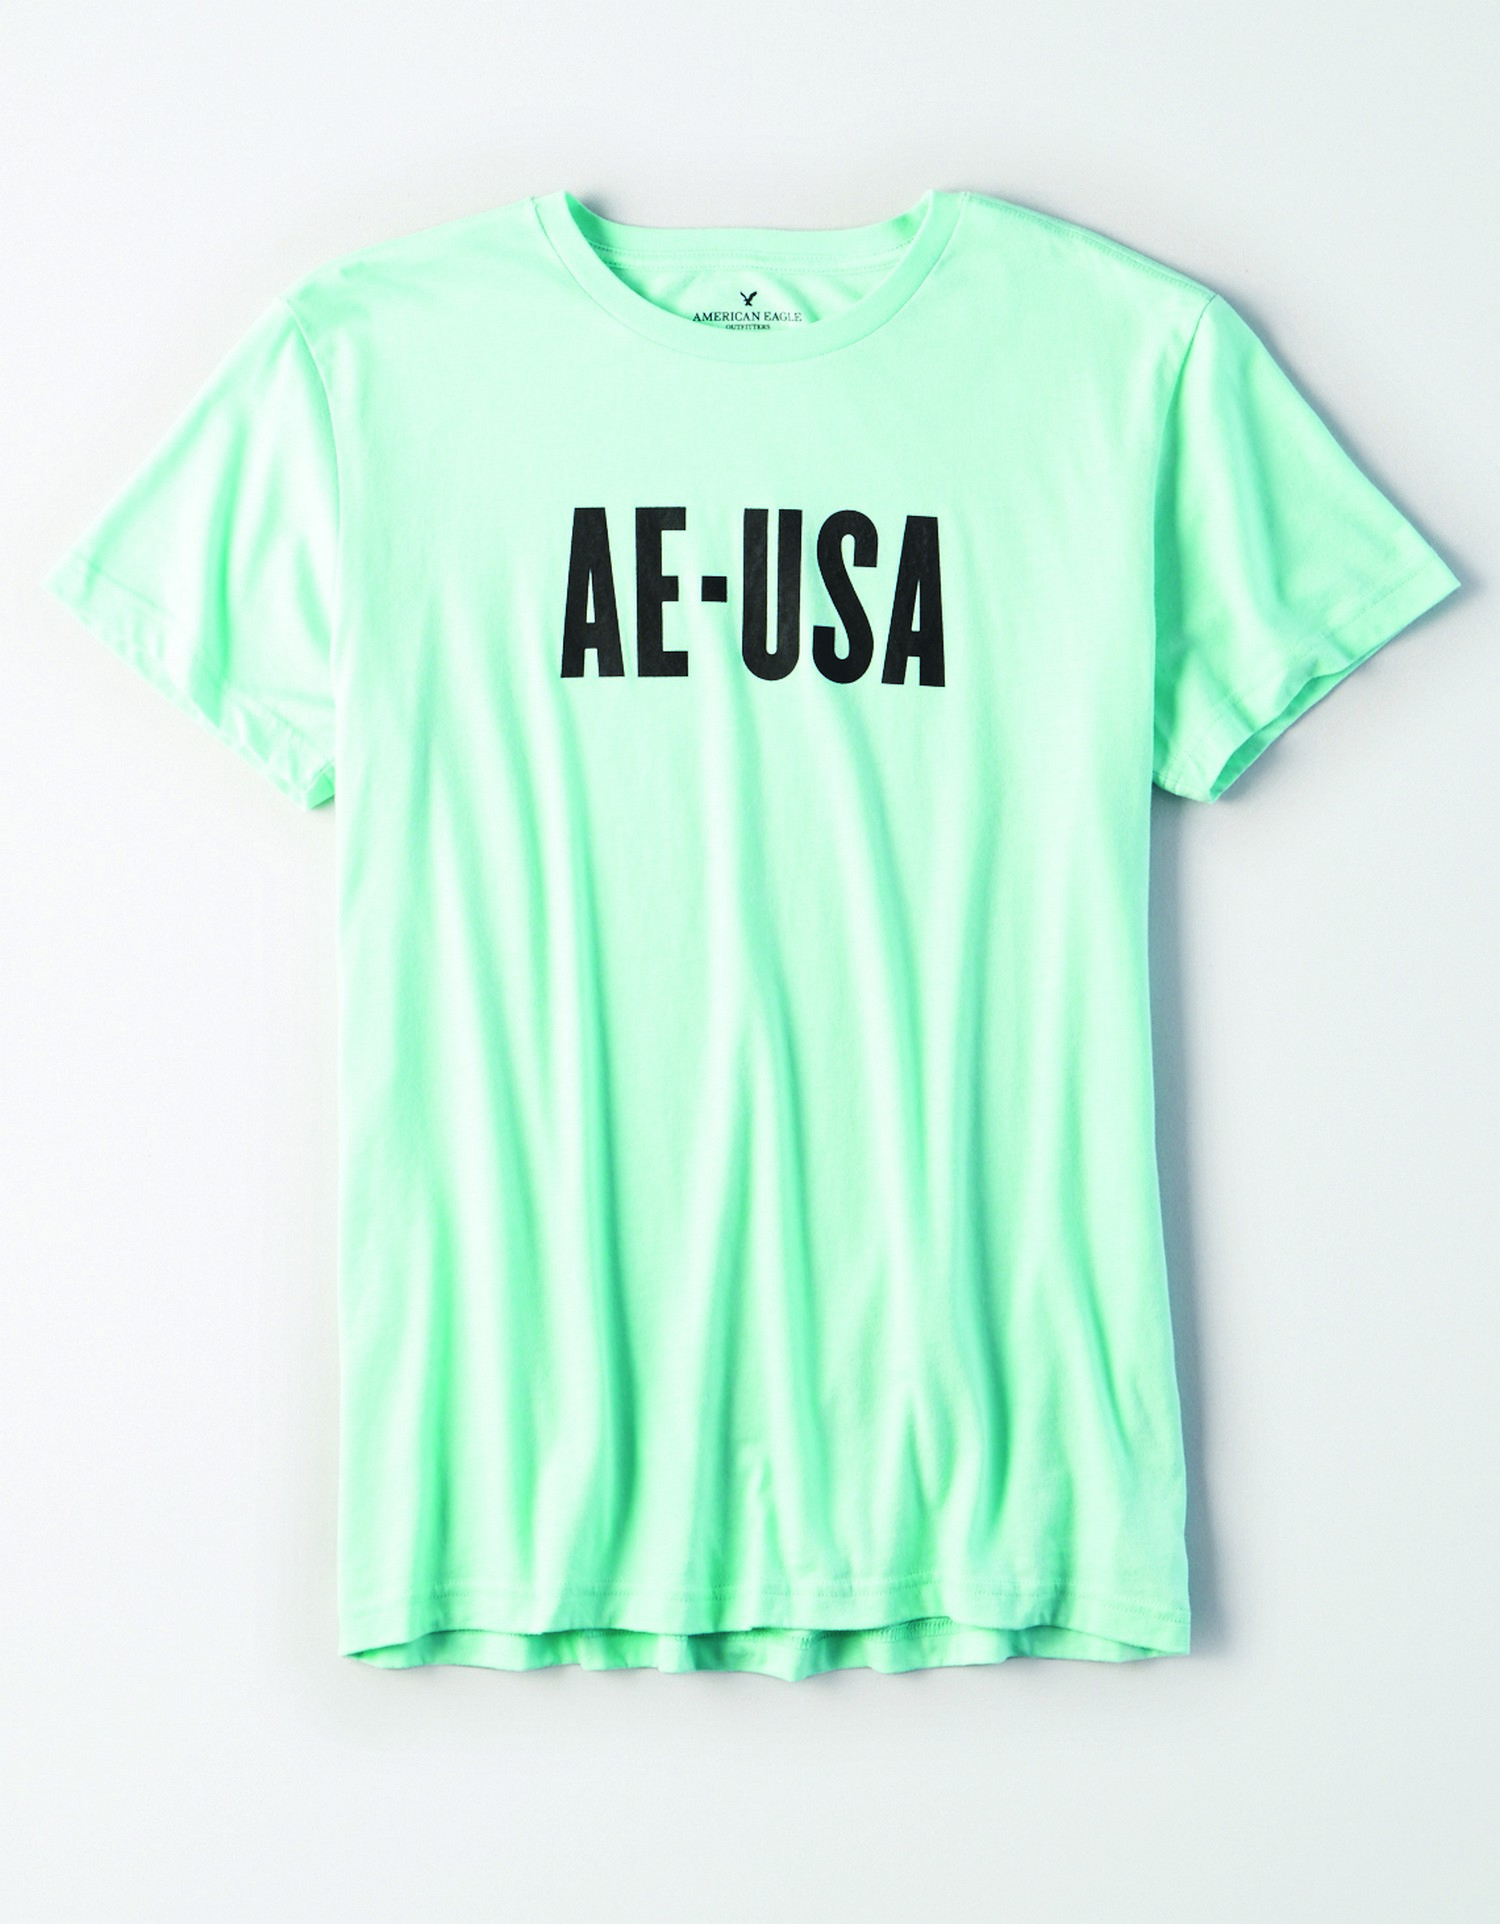 Ae- M-S/S VALUE TEE-mint green with black AE-USA large graphic across the chest JP *Tracked